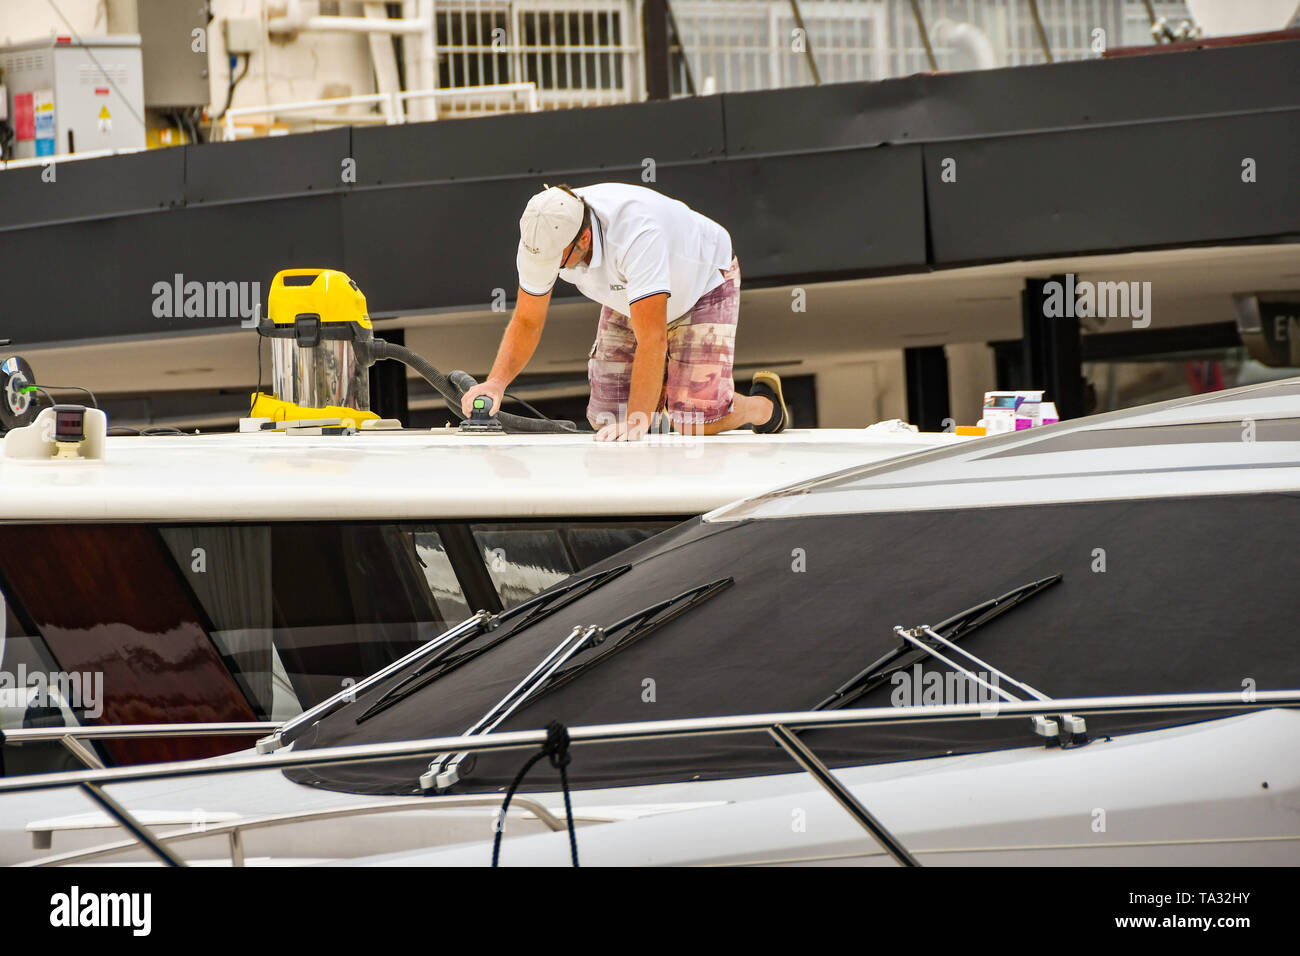 CANNES, FRANCE - APRIL 2019: Person on the roof of a superyacht In Cannes using a power tool to prepare the boat for the spring and summer season - Stock Image